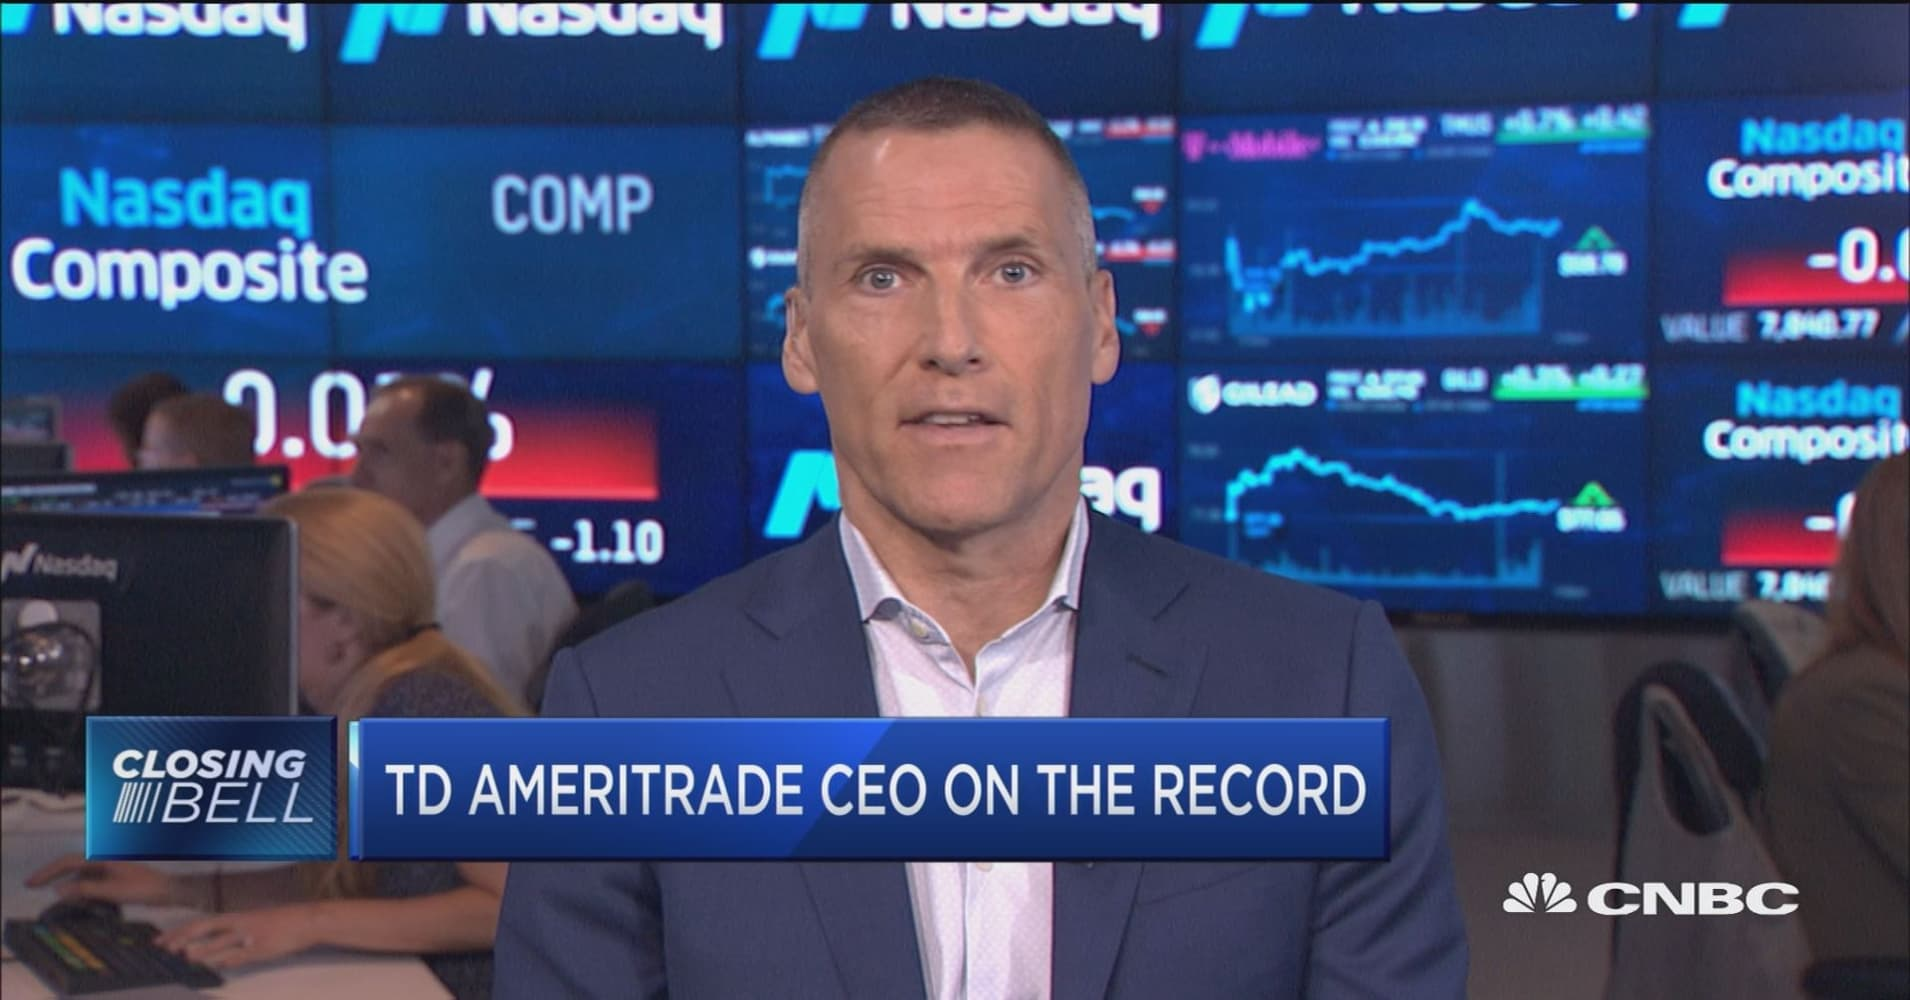 TD Ameritrade CEO on the record about company's earnings